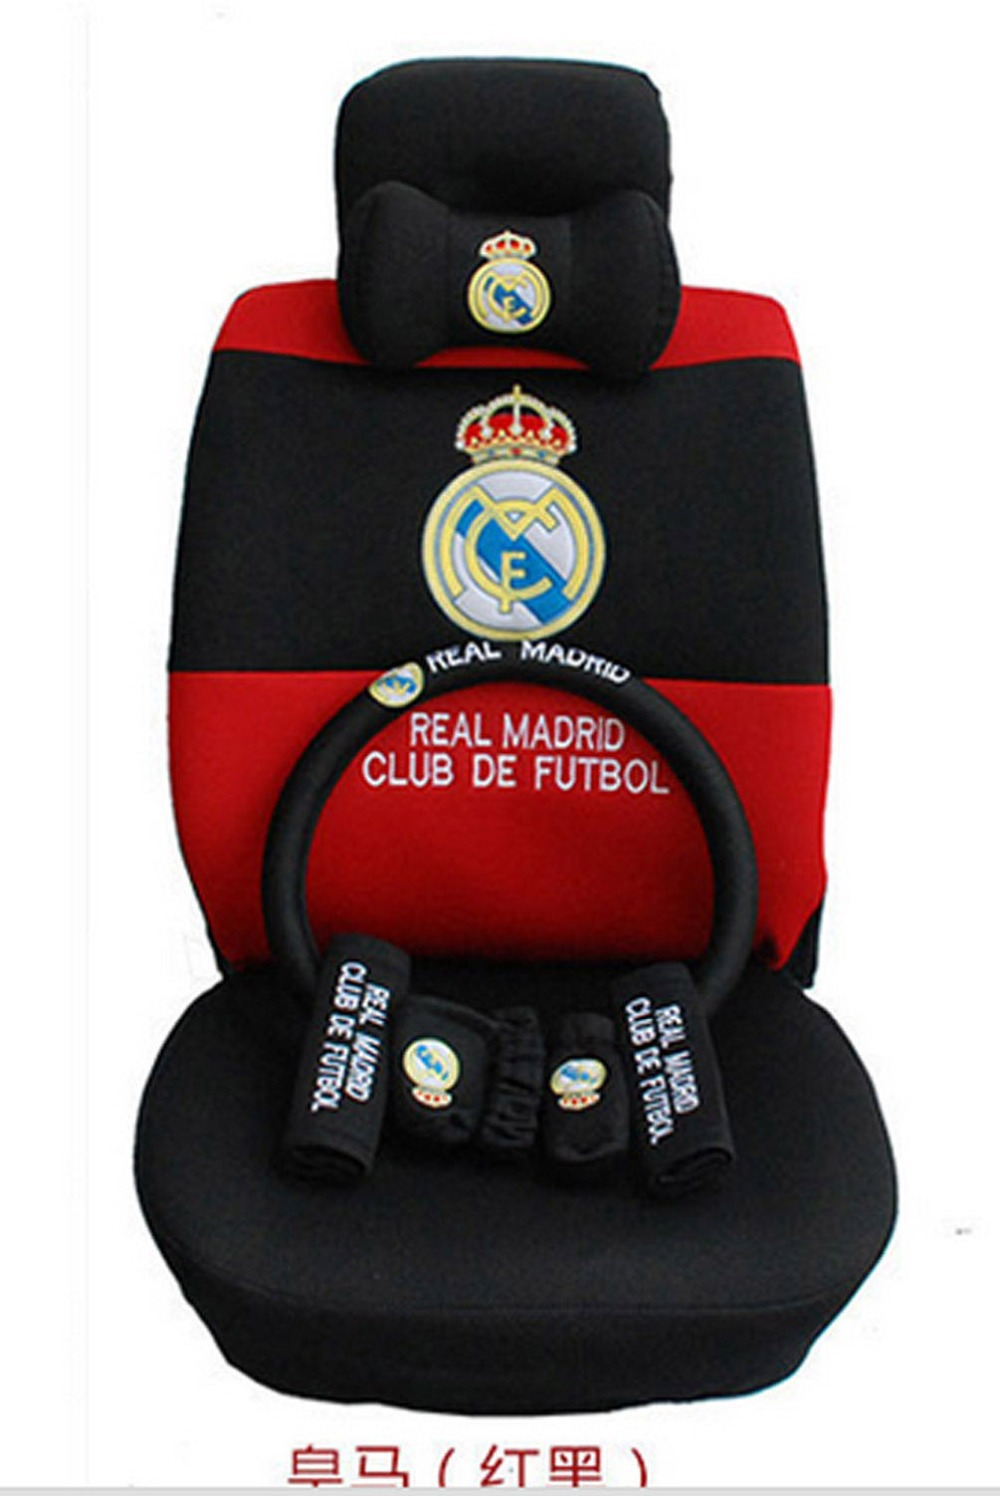 Wondrous 1 Sets Football Fans Car Seat Covers Car Steering Wheel Beatyapartments Chair Design Images Beatyapartmentscom